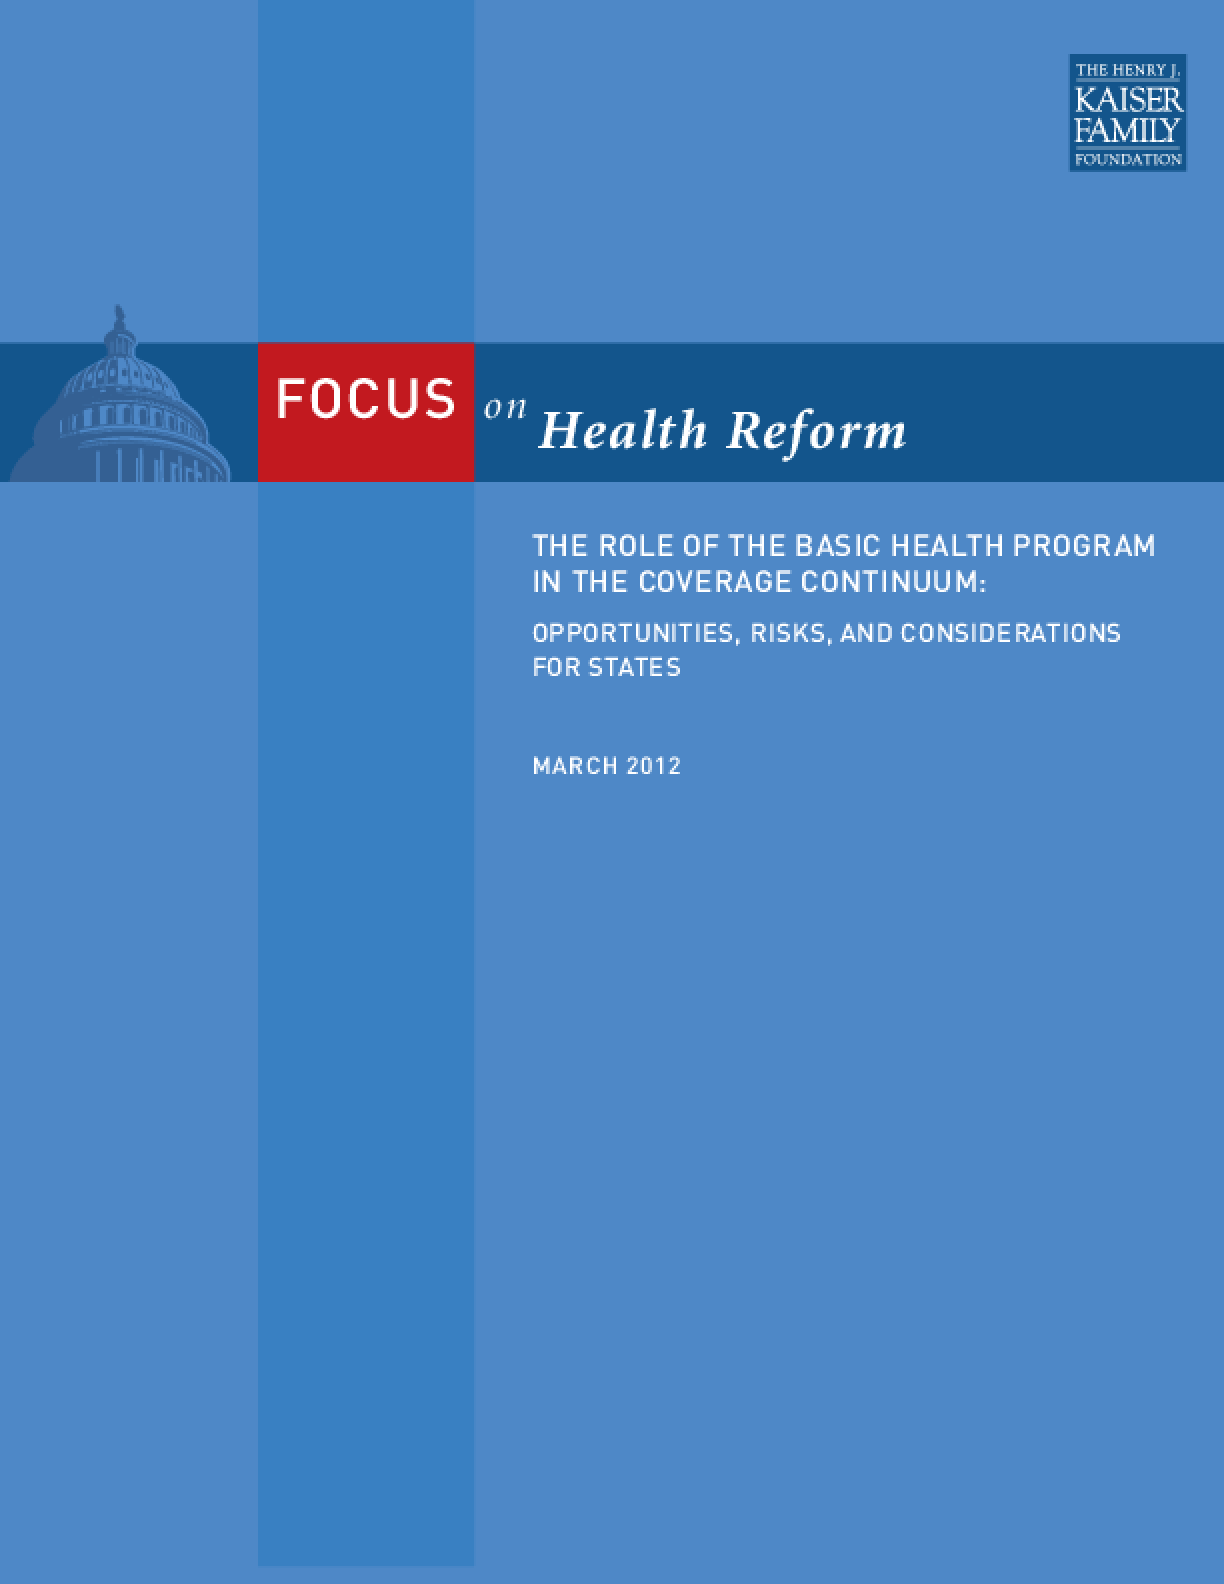 The Role of the Basic Health Program in the Coverage Continuum: Opportunities, Risks and Considerations for States